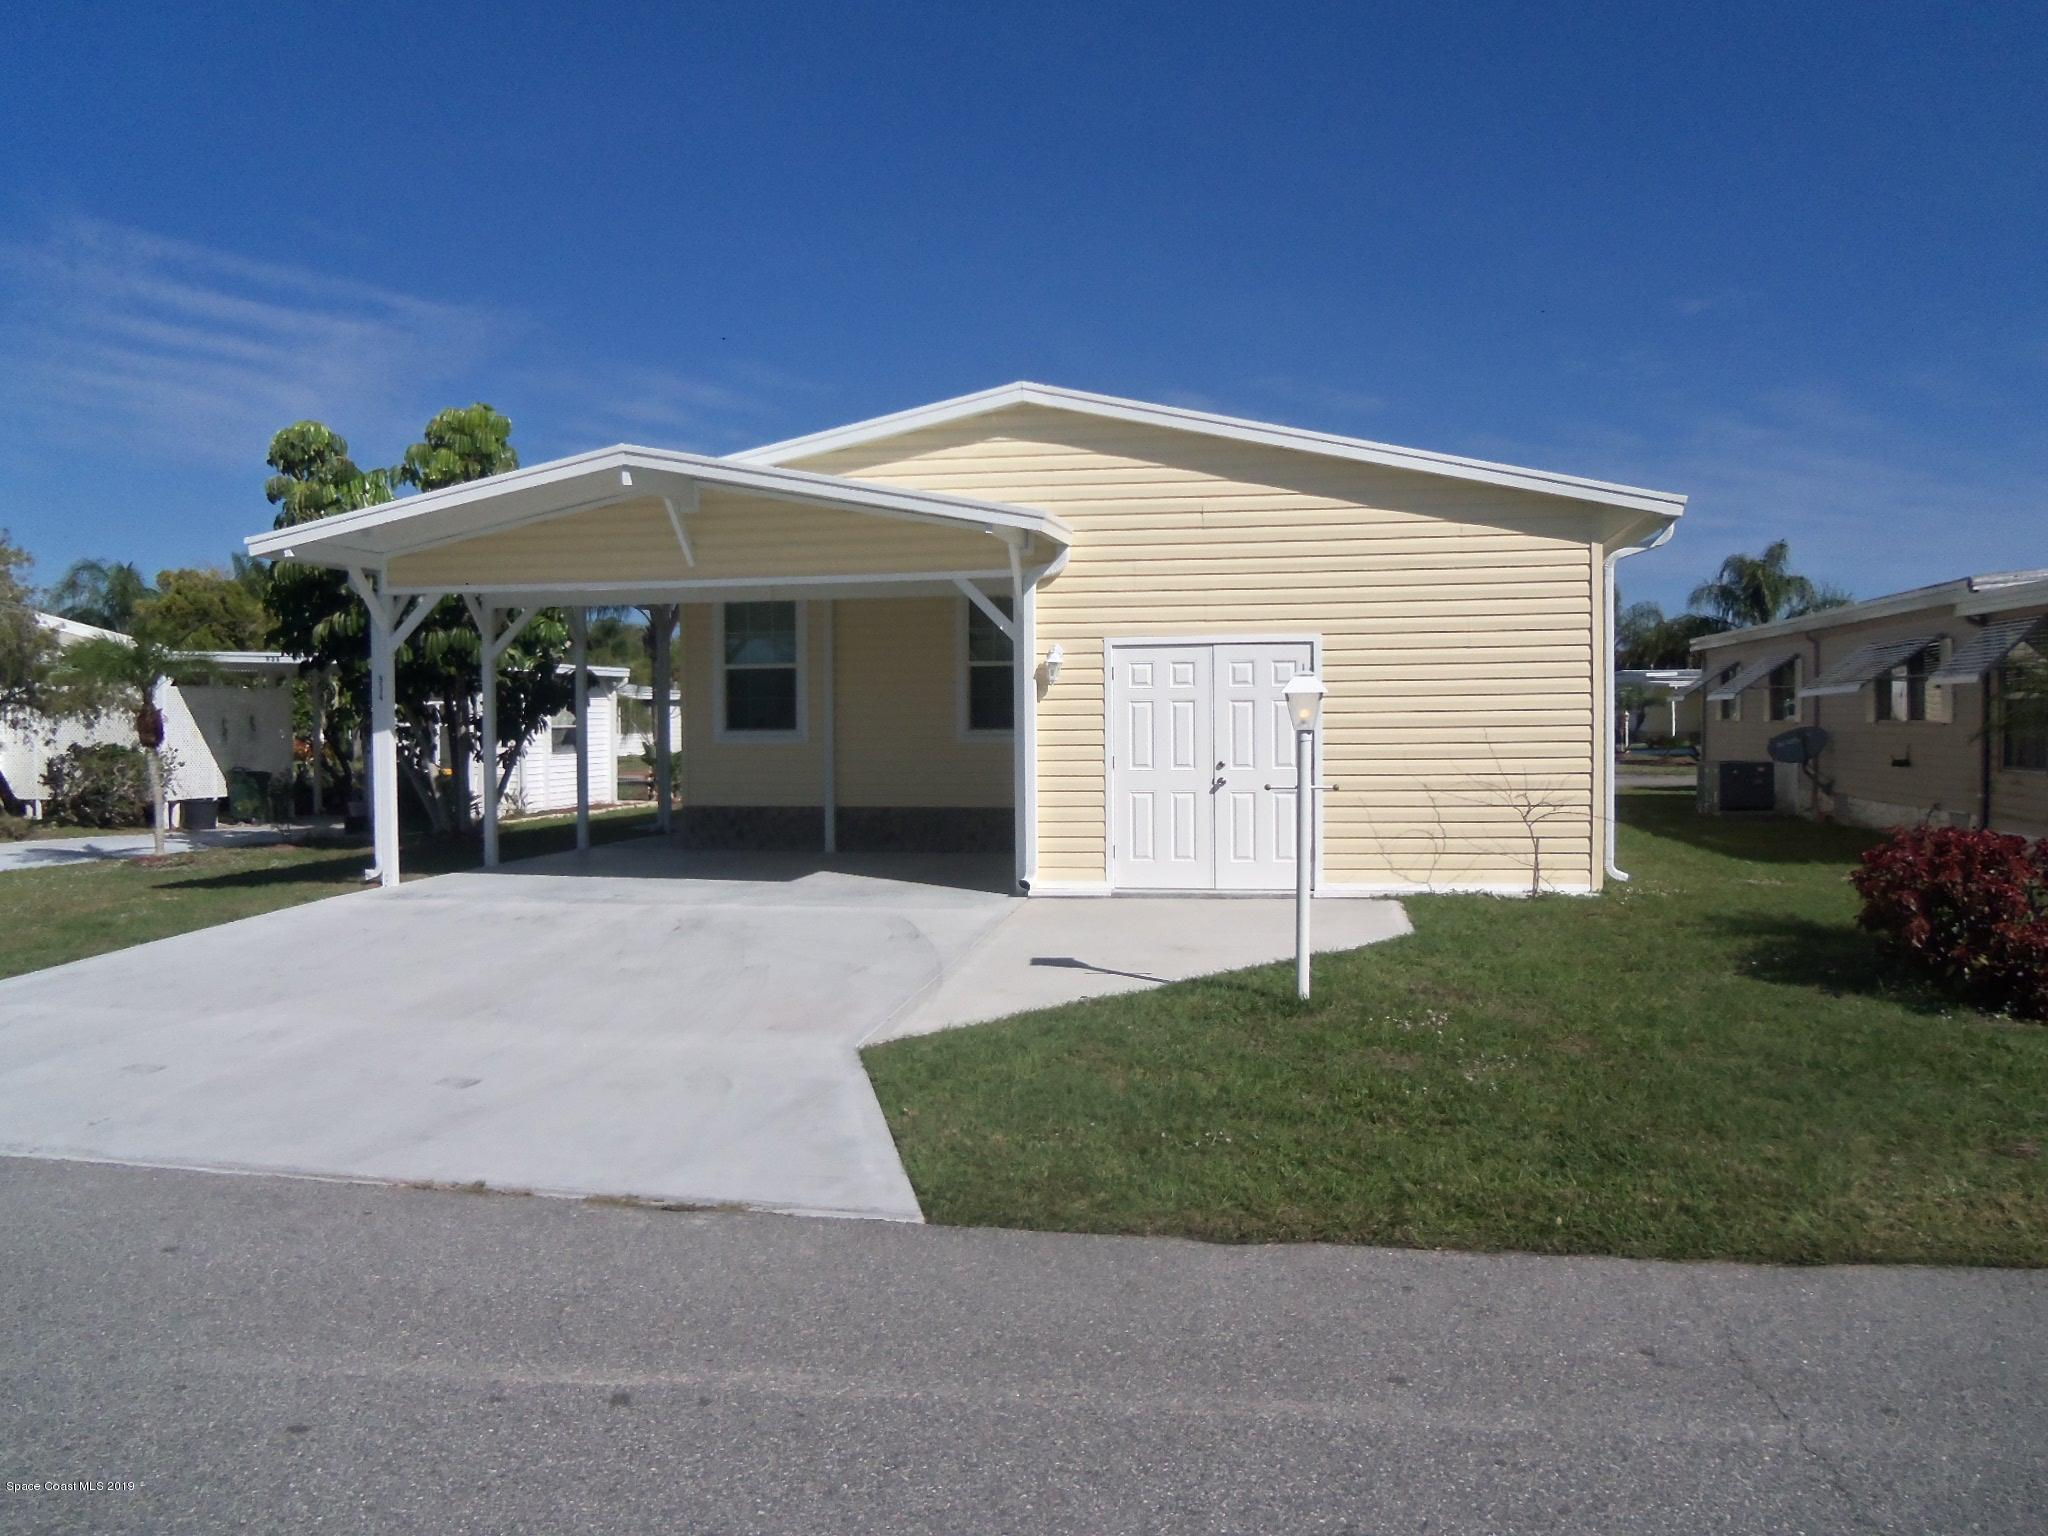 House for Sale at 934 Fir 934 Fir Barefoot Bay, Florida 32976 United States